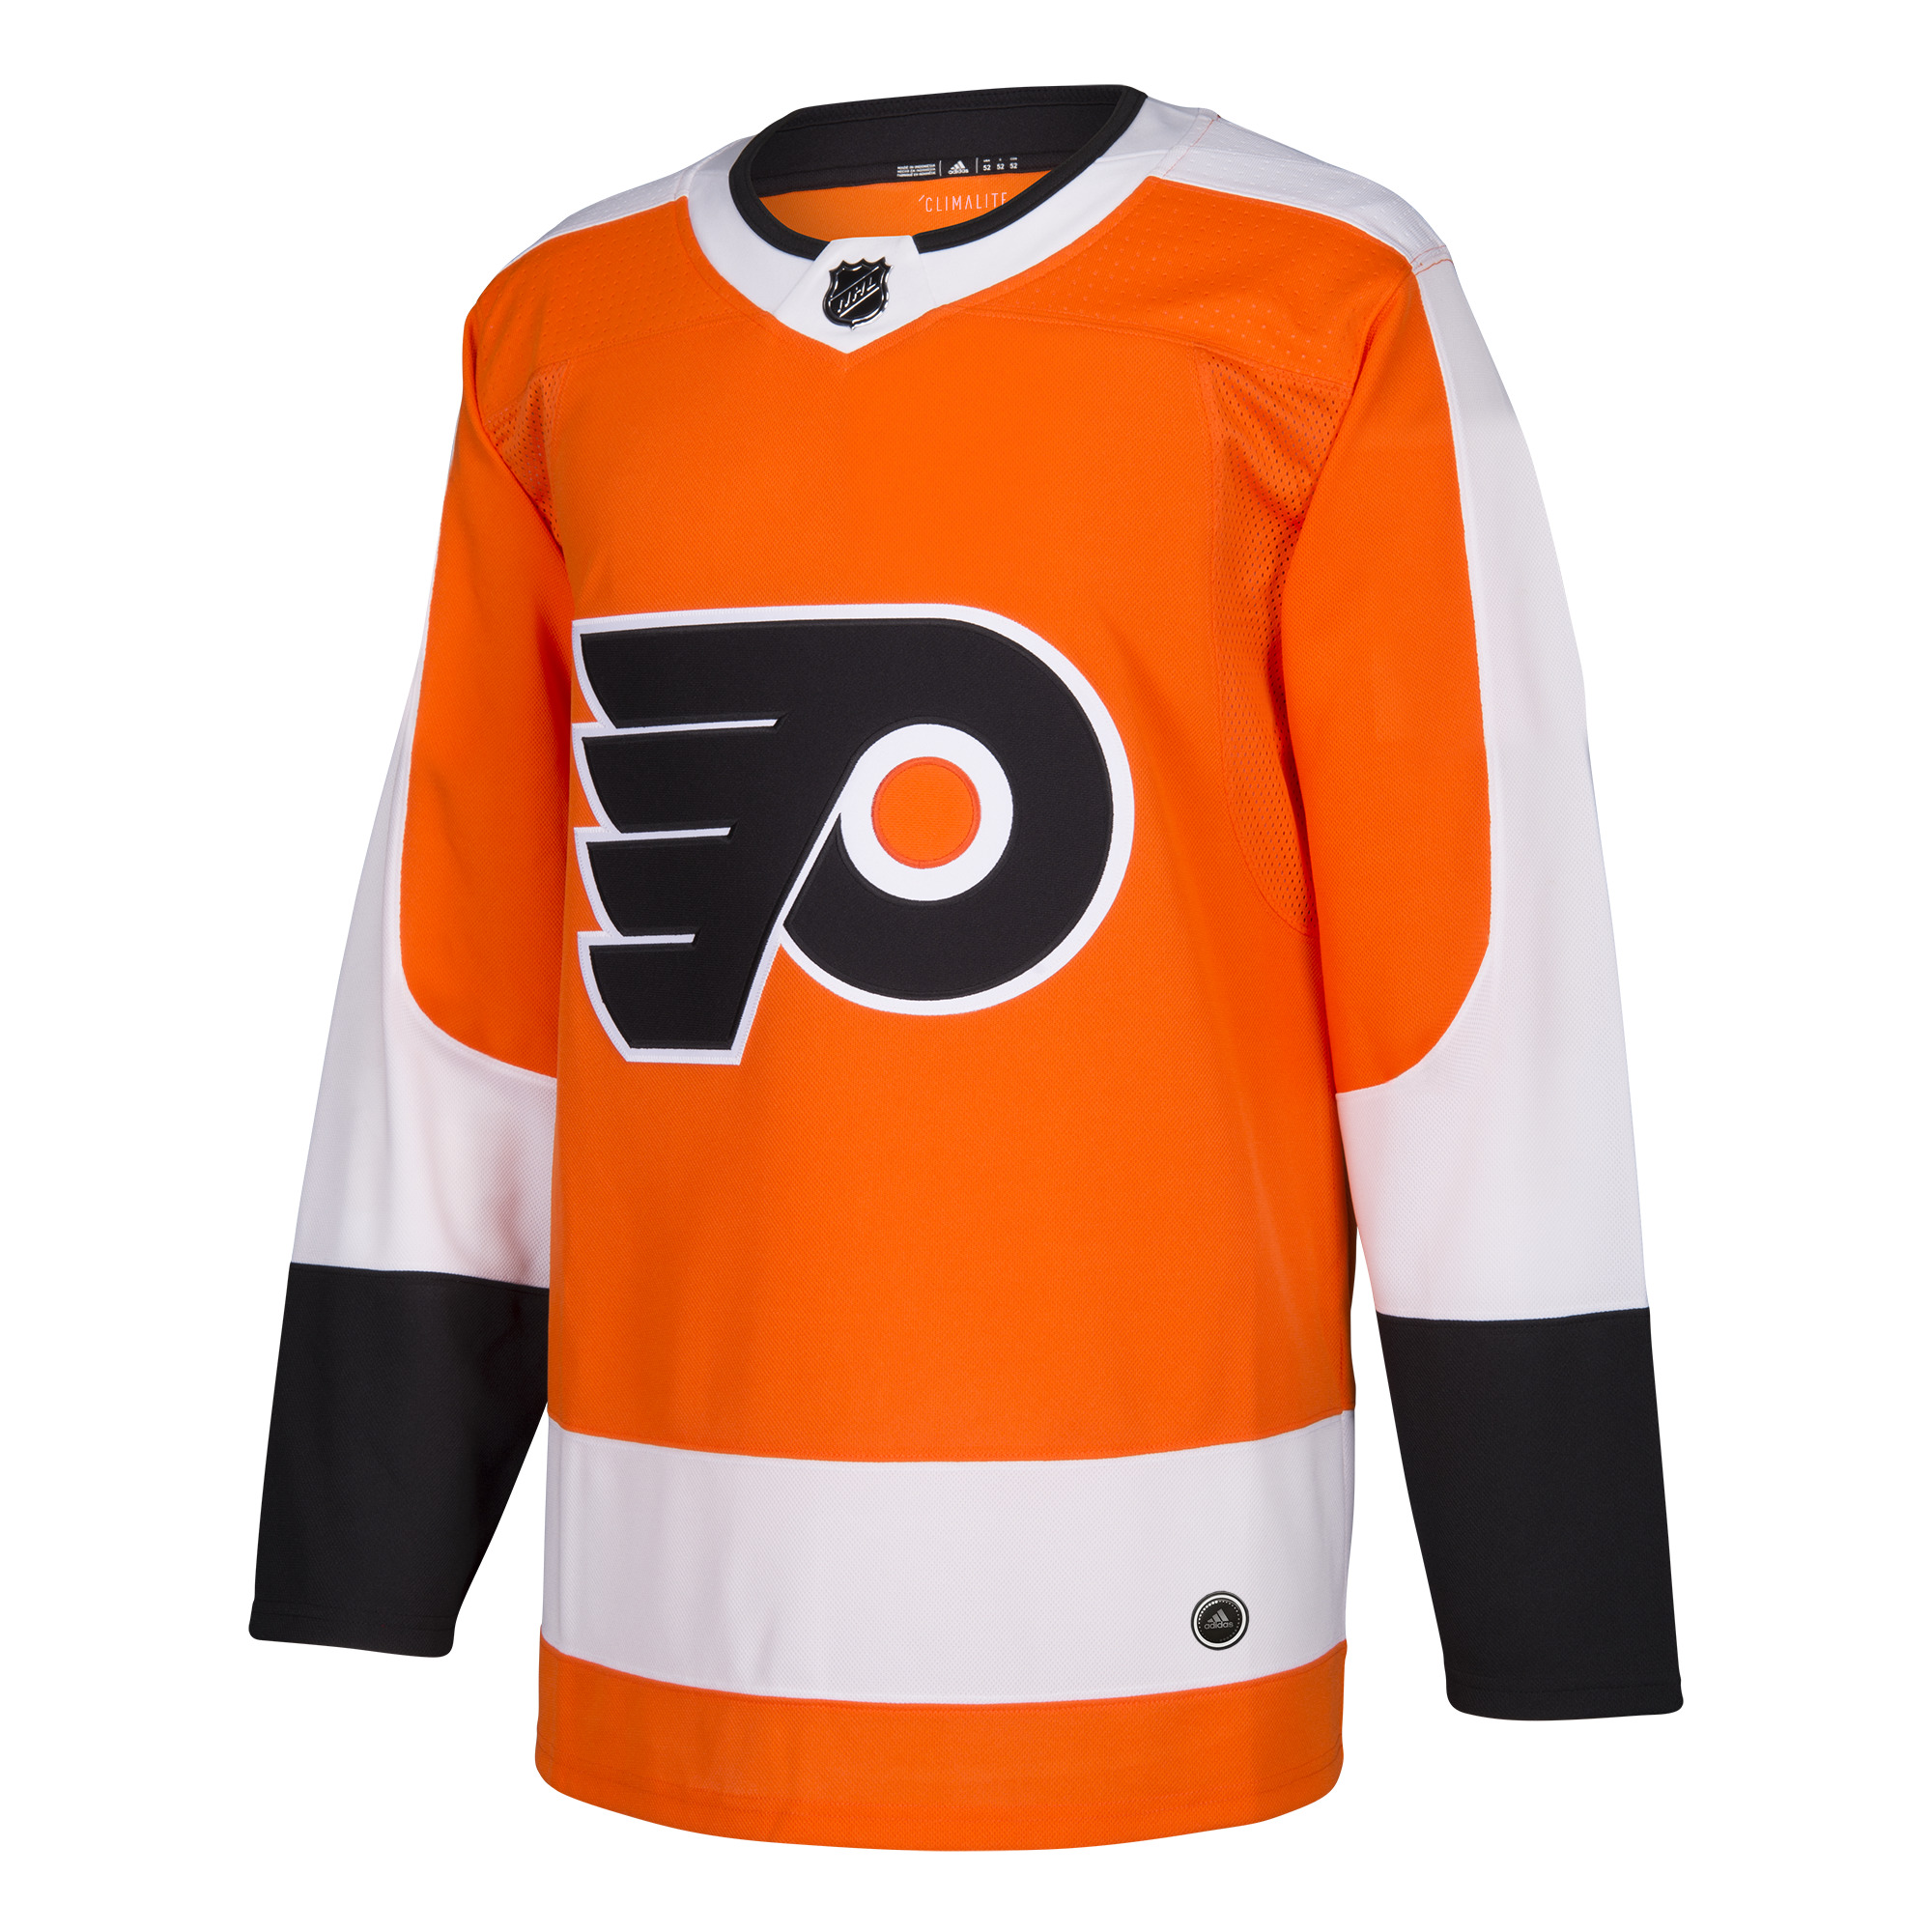 Philadelphia Flyers Men s ADIZERO Home Orange Jersey by Adidas ... 2db6a2e36